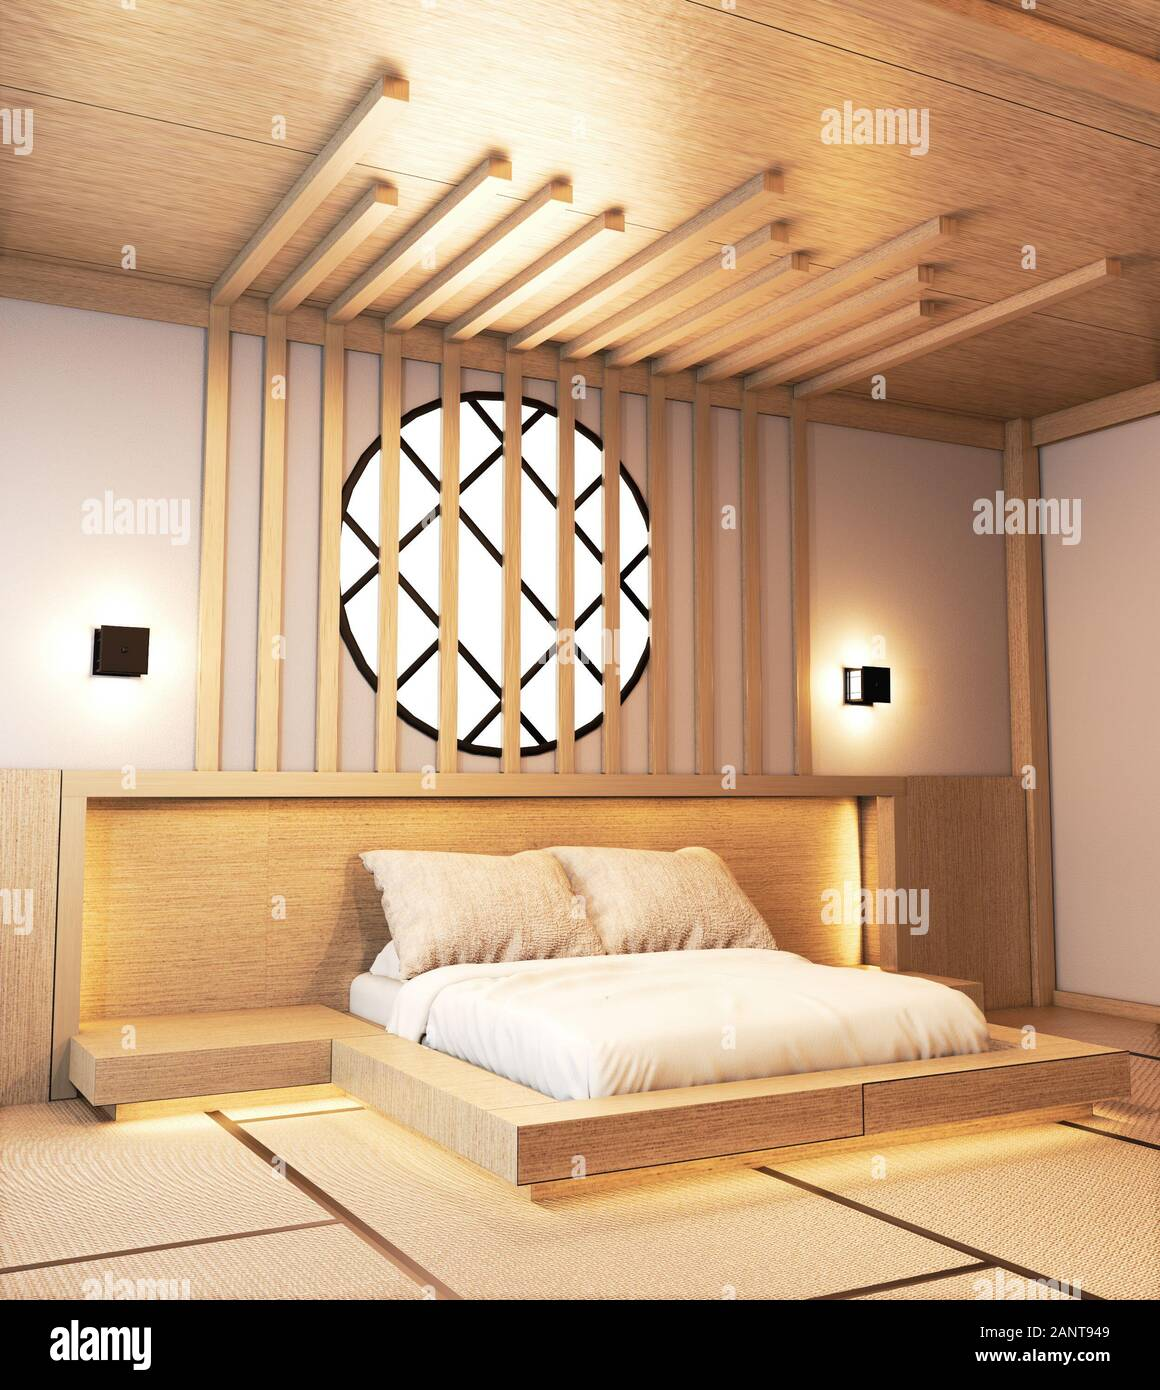 Bedroom Design Japanese Wooden With Battens And Hiden Light Wall Design 3d Rendering Stock Photo Alamy